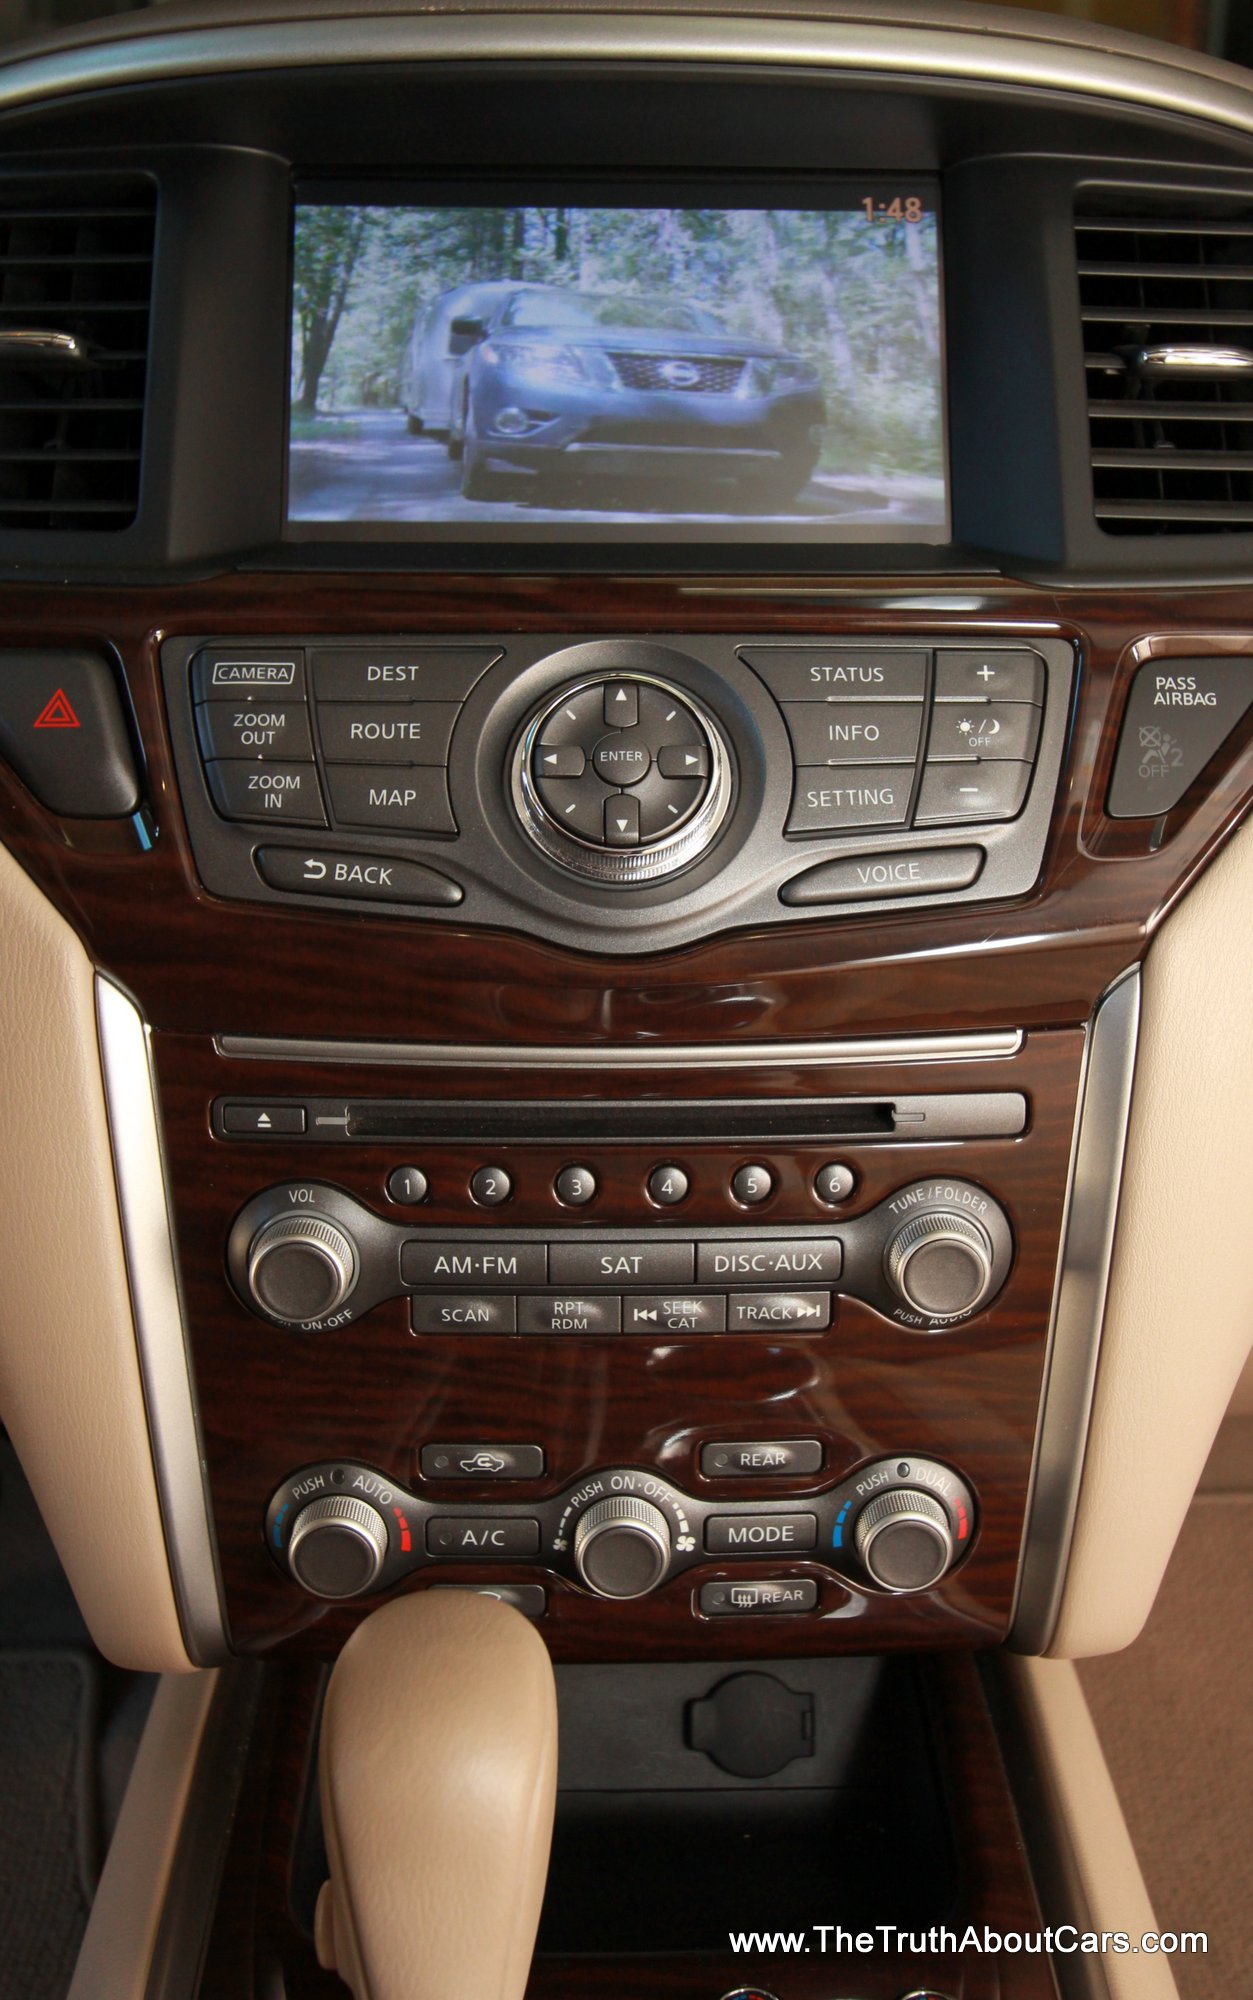 2013 Nissan Pathfinder Interior Dashobard Picture Courtesy Of Alex L Dykes The Truth About